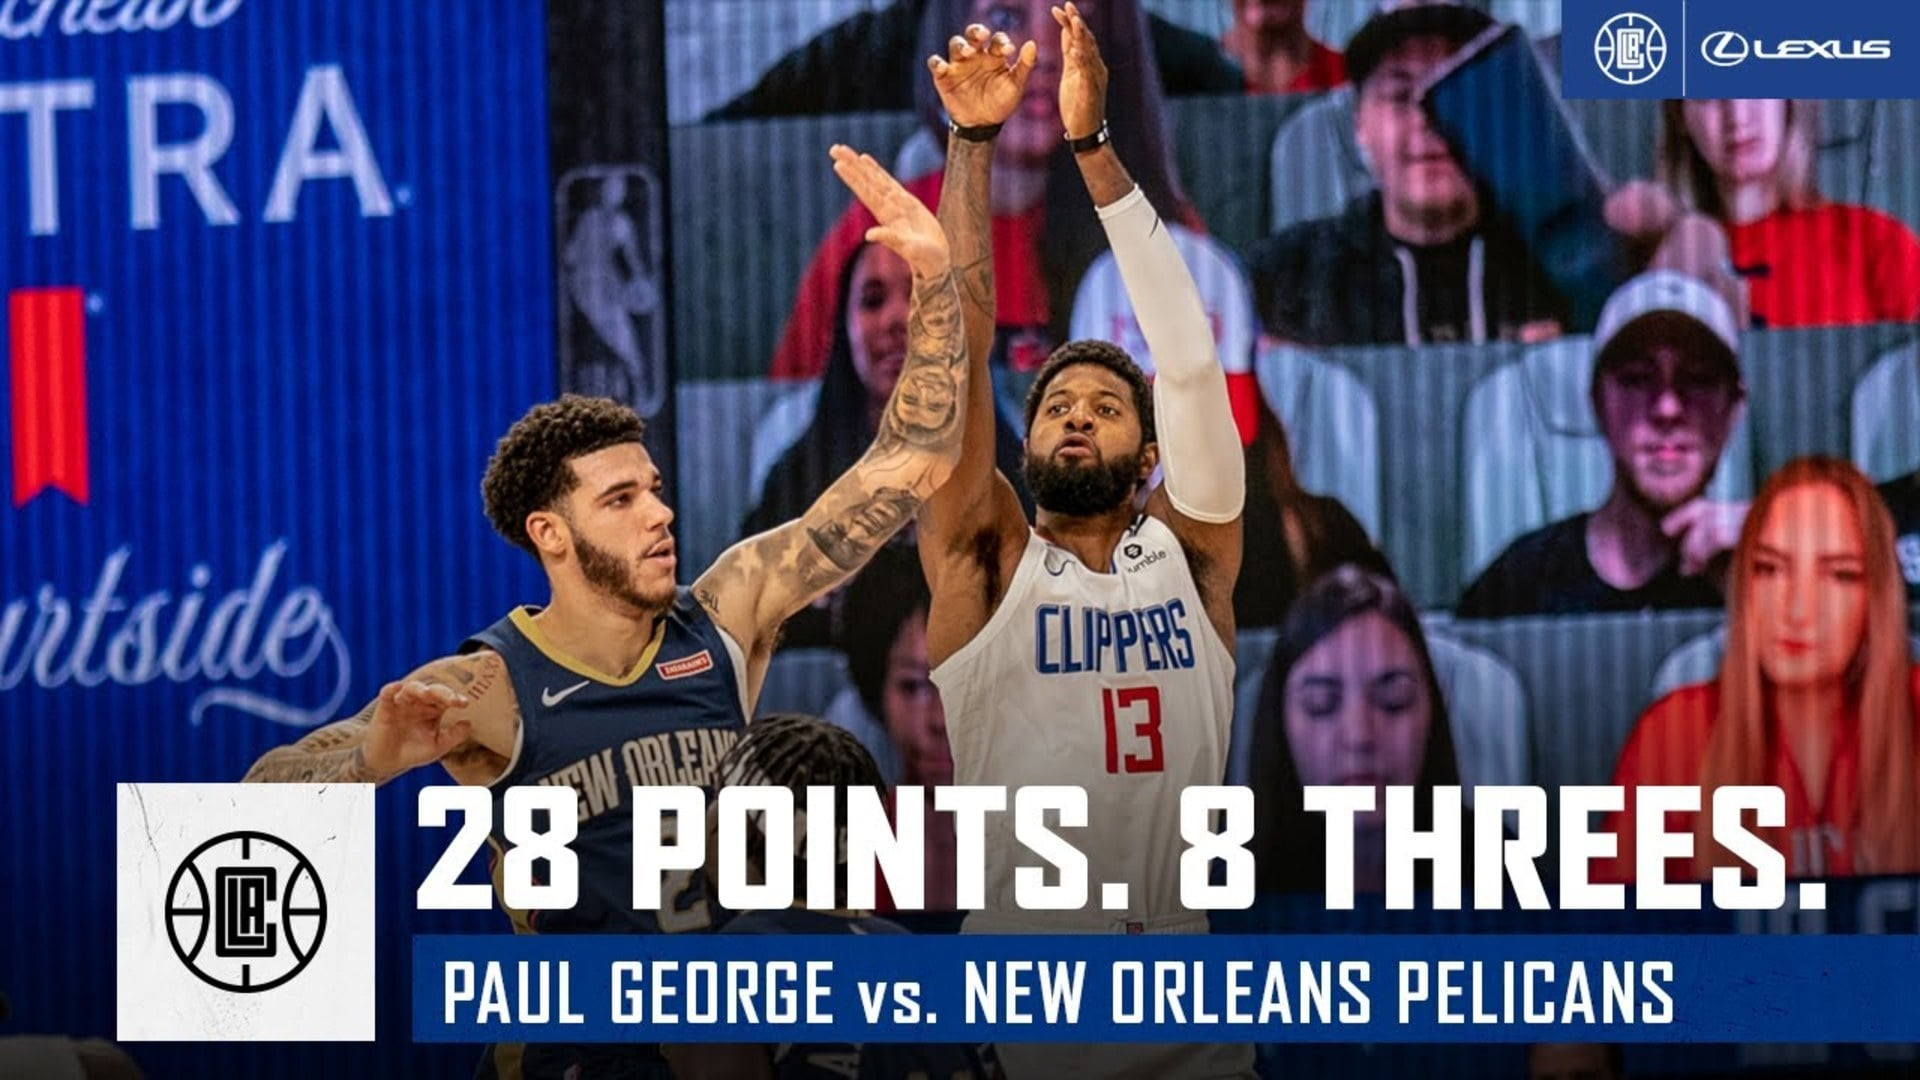 Paul George Drops 28 points and 8 Threes vs. Pelicans | Lexus Player Highlights